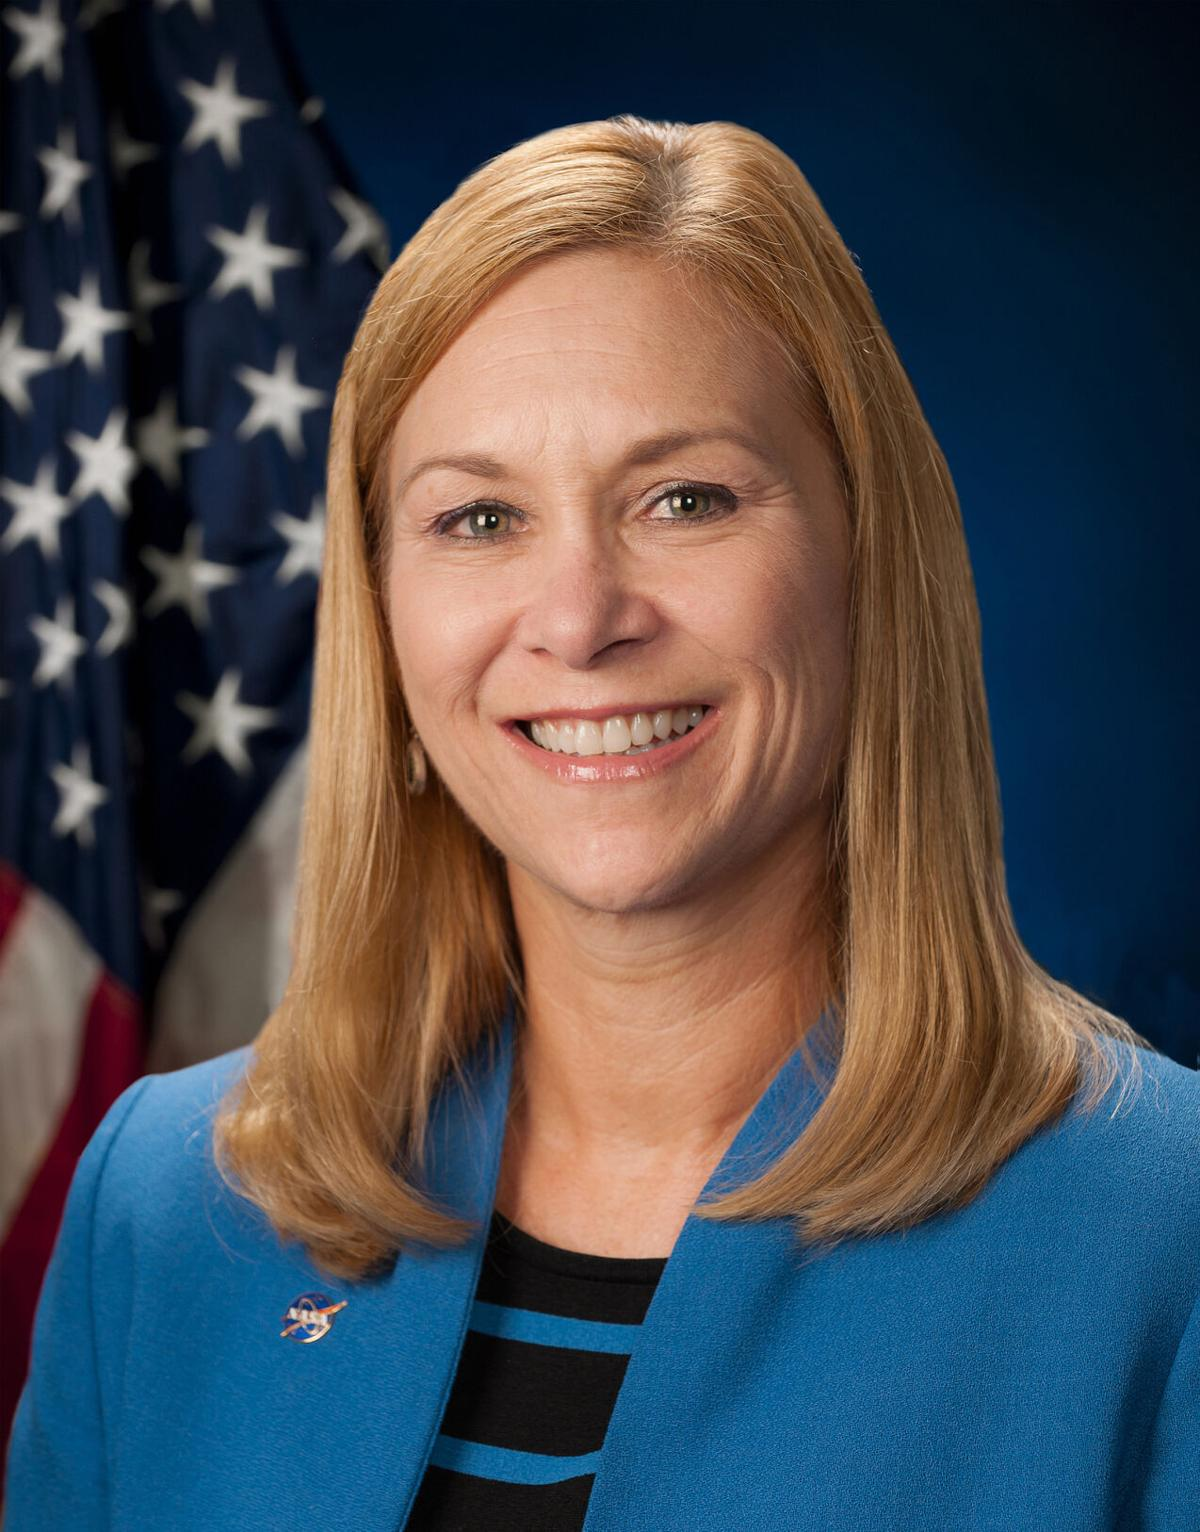 Janet Petro, director of NASA's Kennedy Space Center in Florida